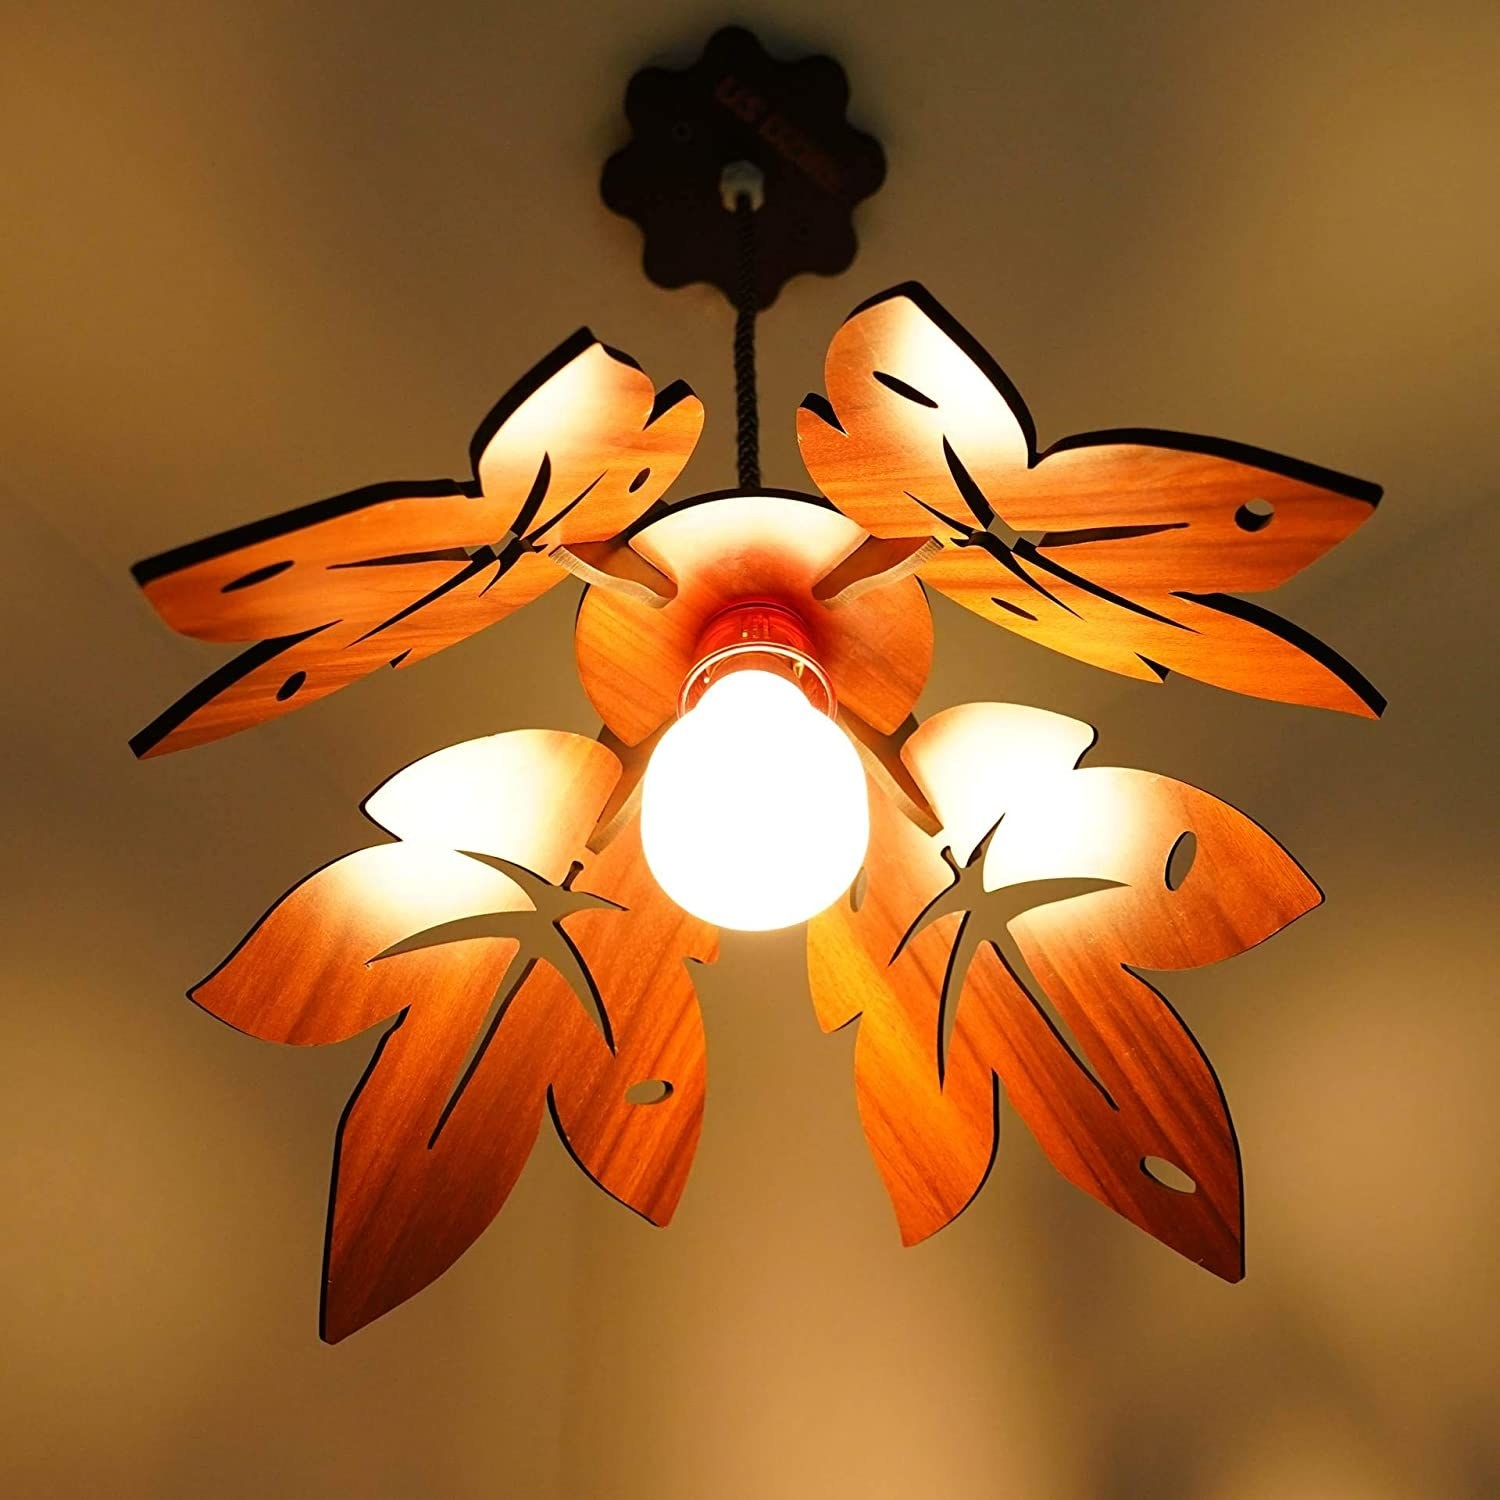 A lit hanging lamp with a wooden lampshade carved into leaves